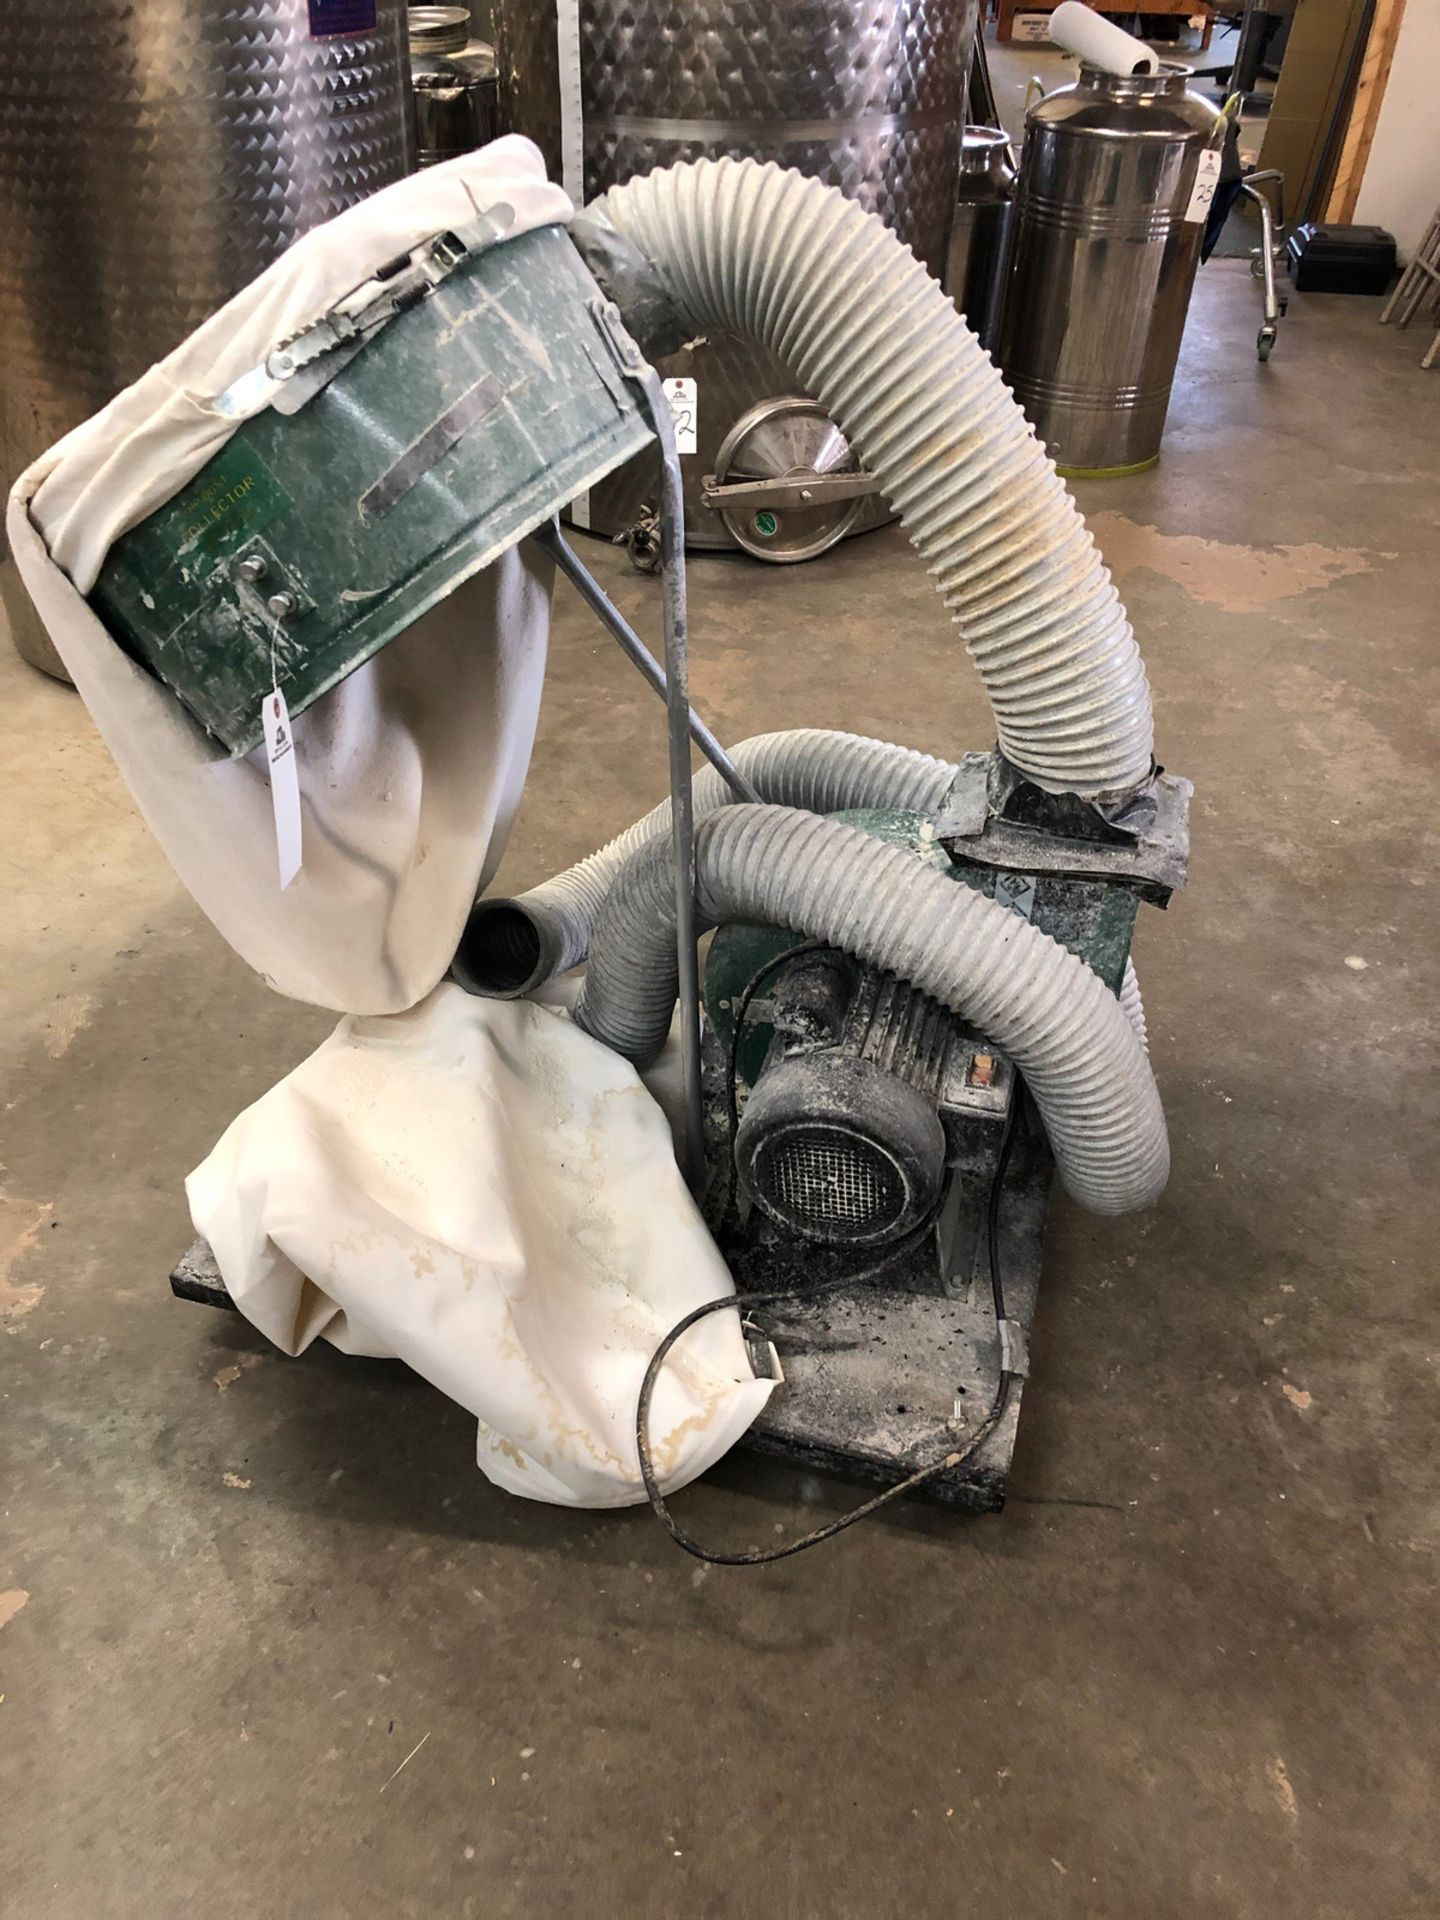 Lot 88 - Central Machinery 2Hp Dust Collector, 70 Gallon, 3450 RPM, 120V / 60Hz / 14A, S | Rig Fee: $25 or HC